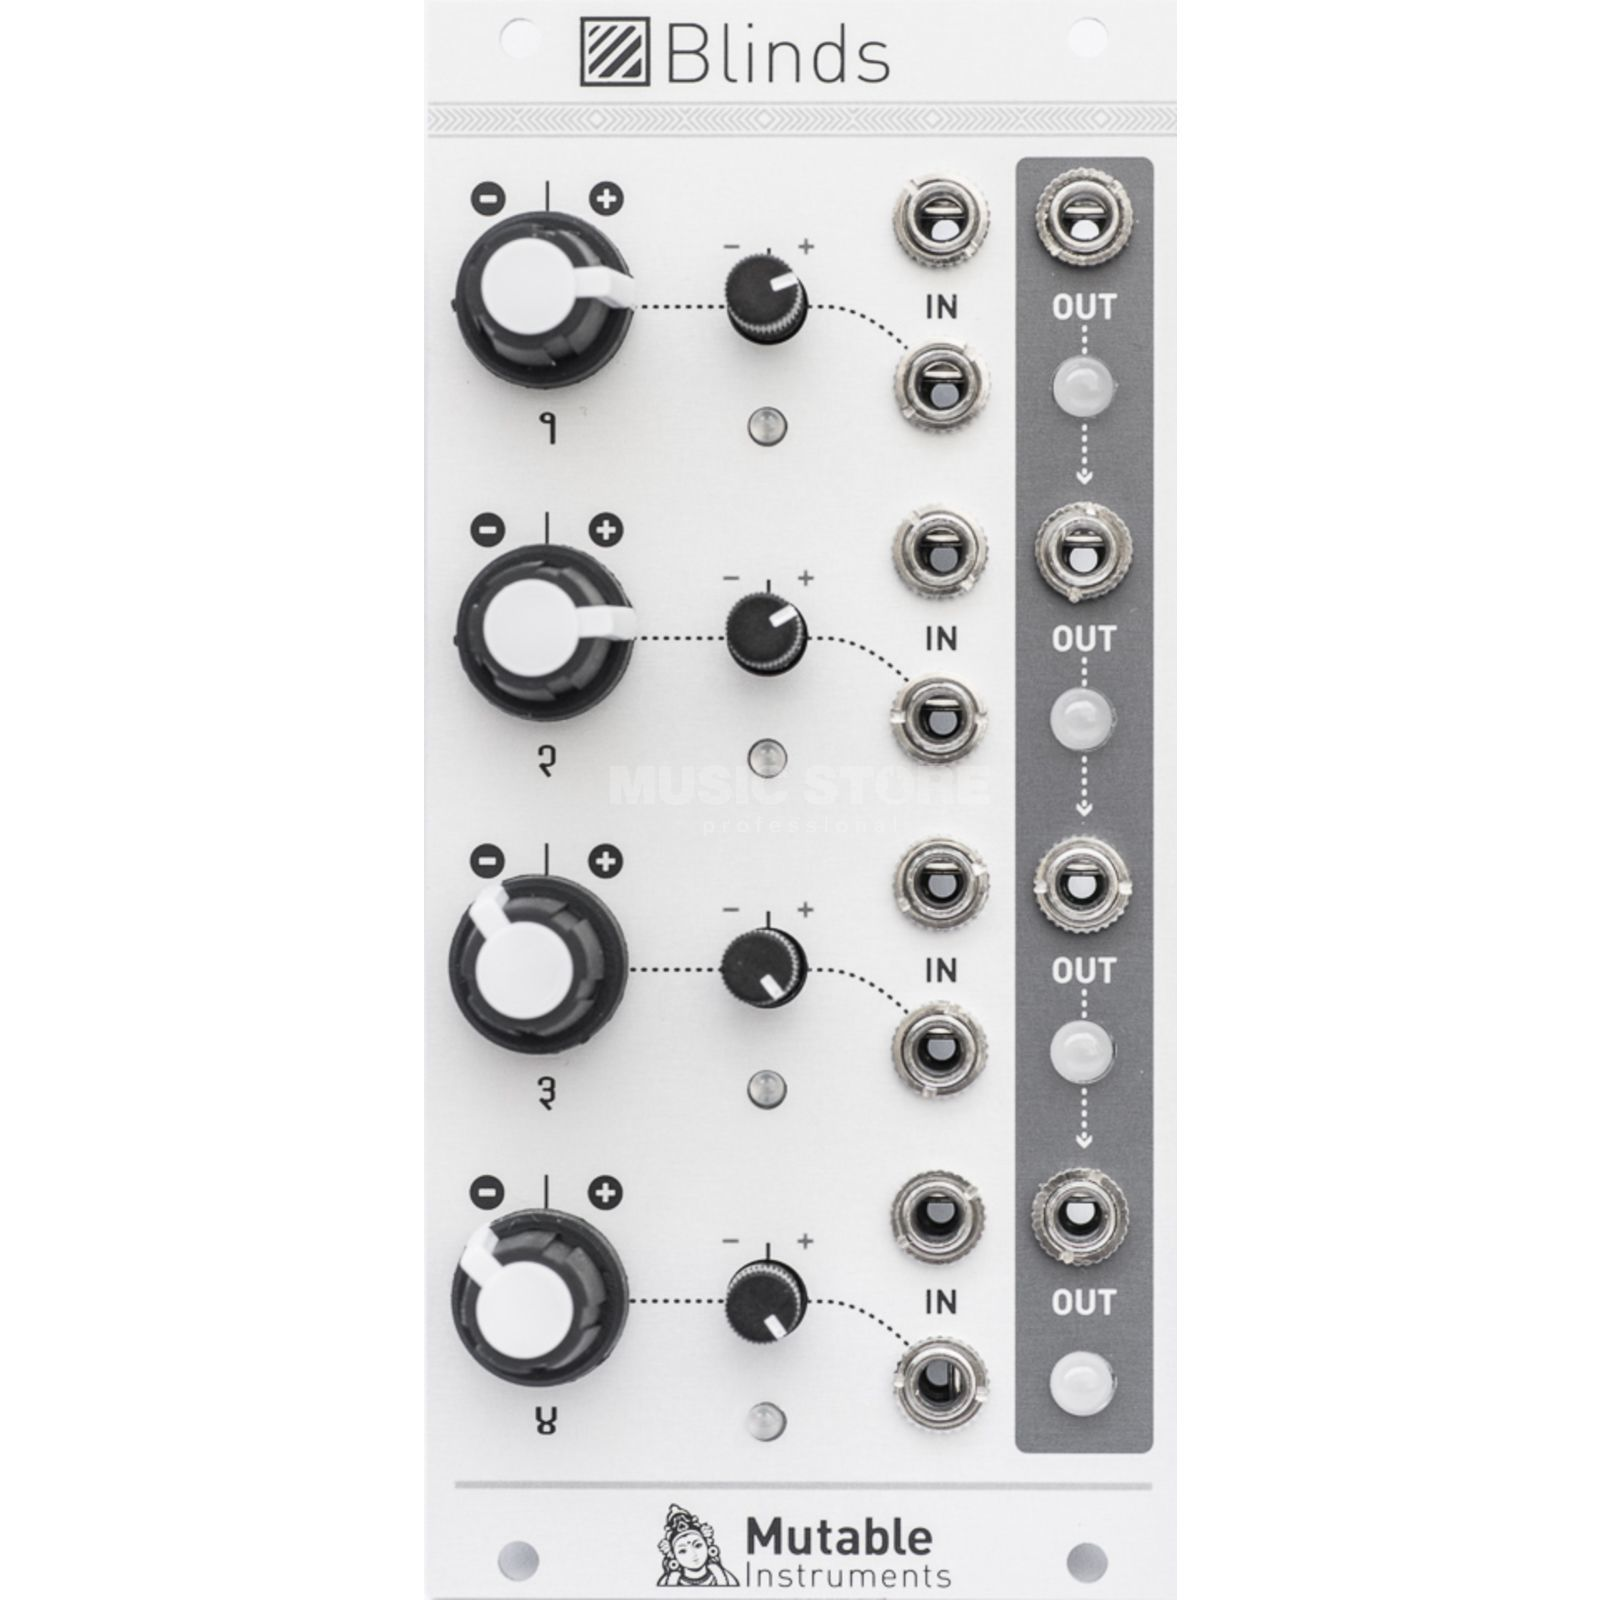 Mutable Instruments Blinds Quad VC-polarizer Image du produit